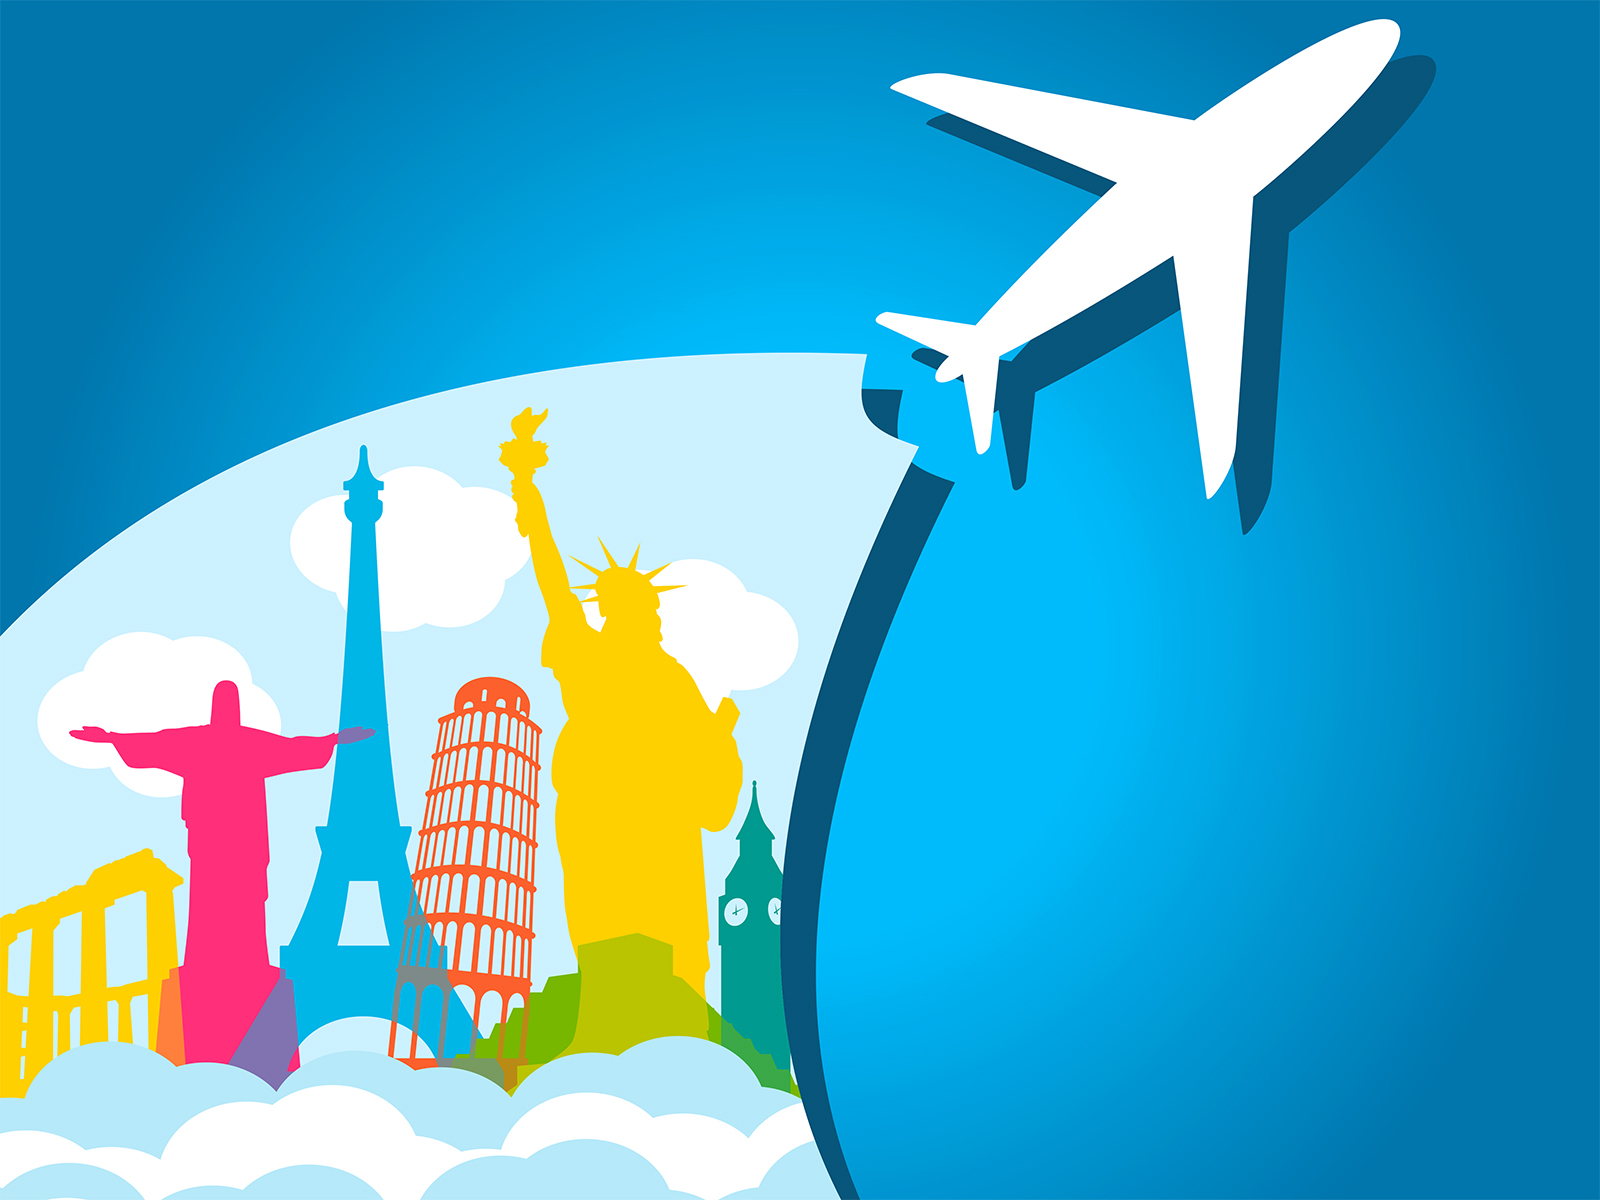 Travel Agency Wallpaper Hd Airplane Holiday Backgrounds Transportation Travel